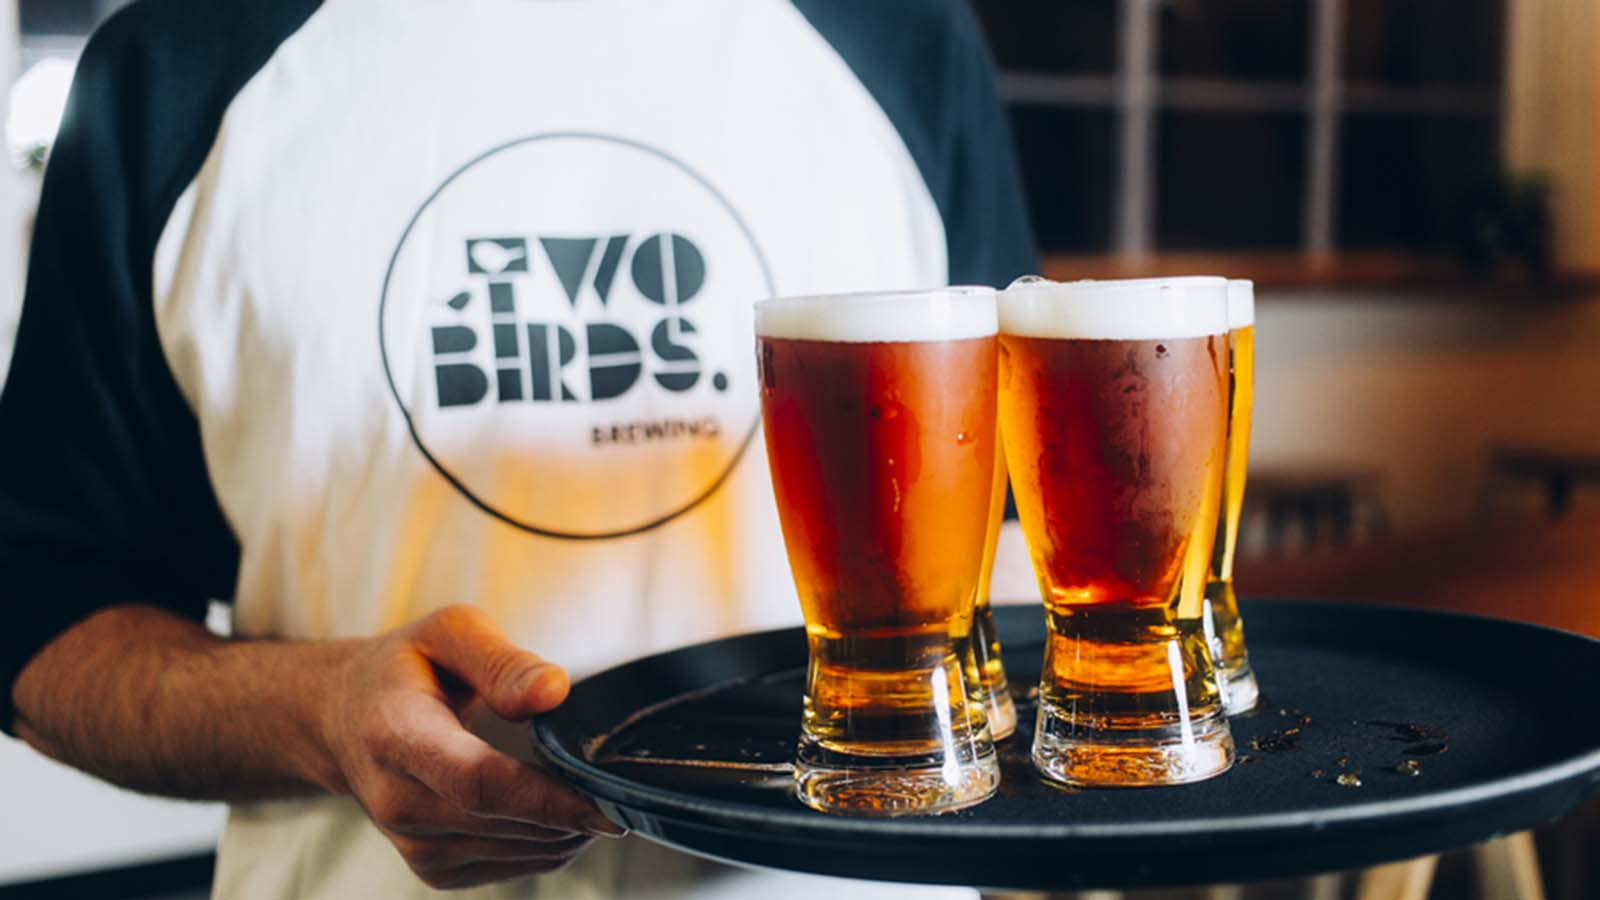 Two Birds Brewing, Spotswood, Victoria, Australia